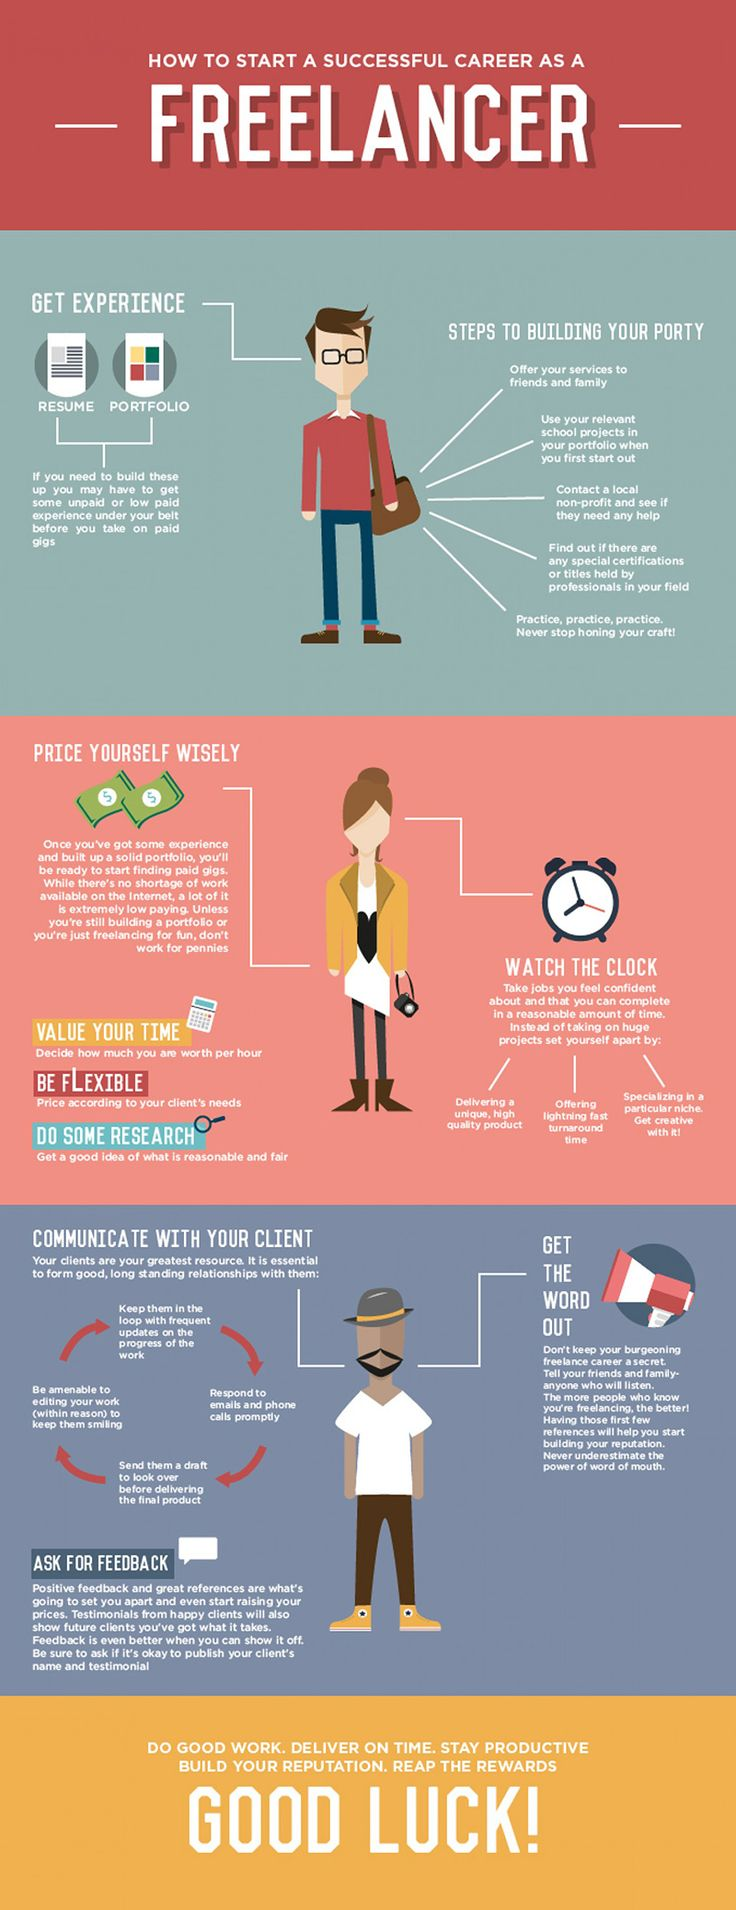 How to Start a Successful Career As a Freelancer #infographic #Freelancing #Career